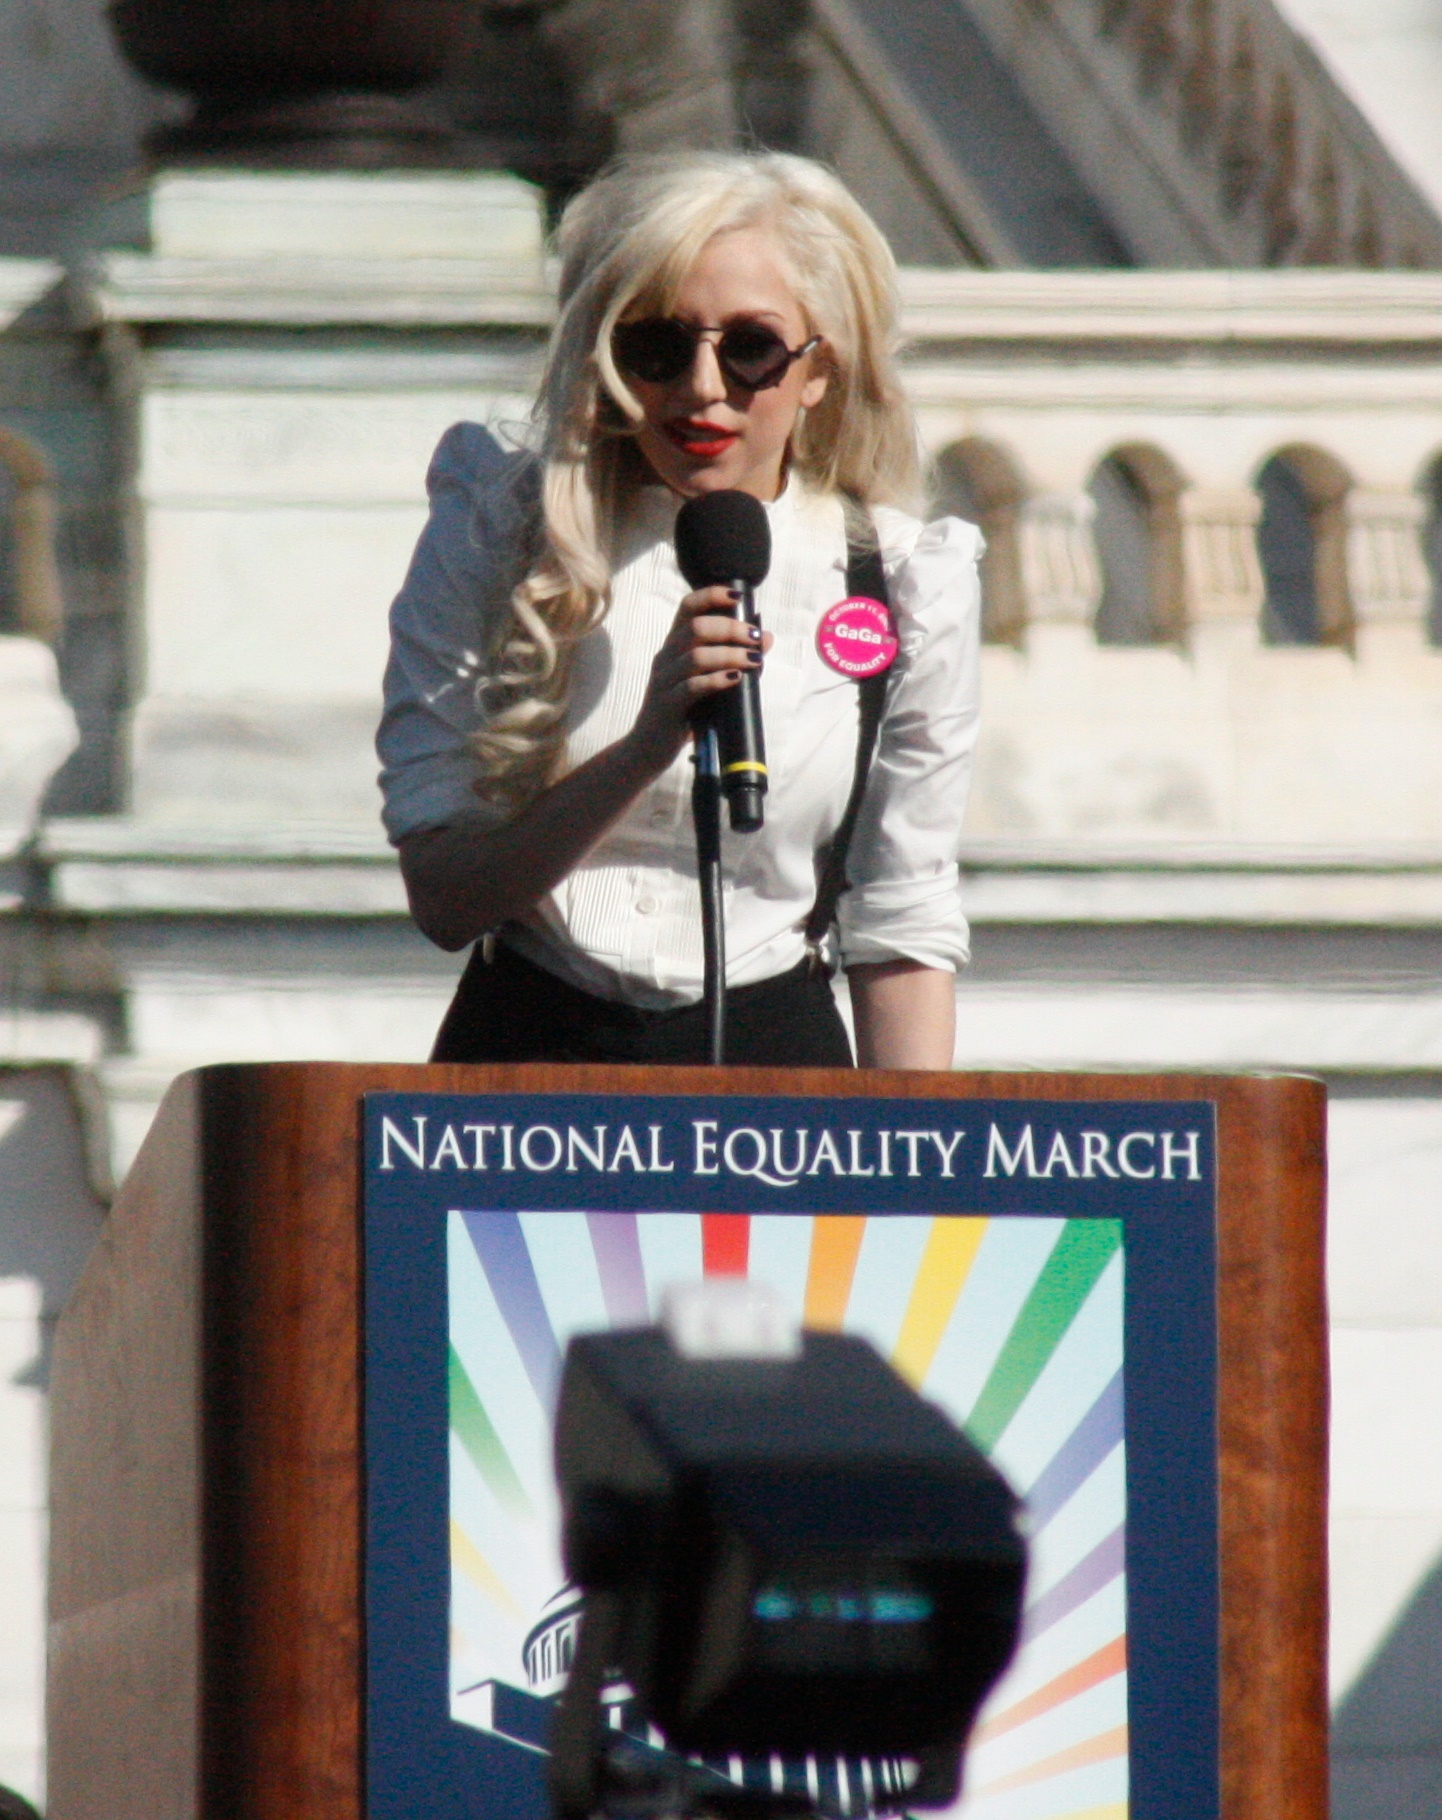 Lady Gaga giving a speech at National Equality March, 28 November 2009  image credit: Ryan J. Reilly via Flickr